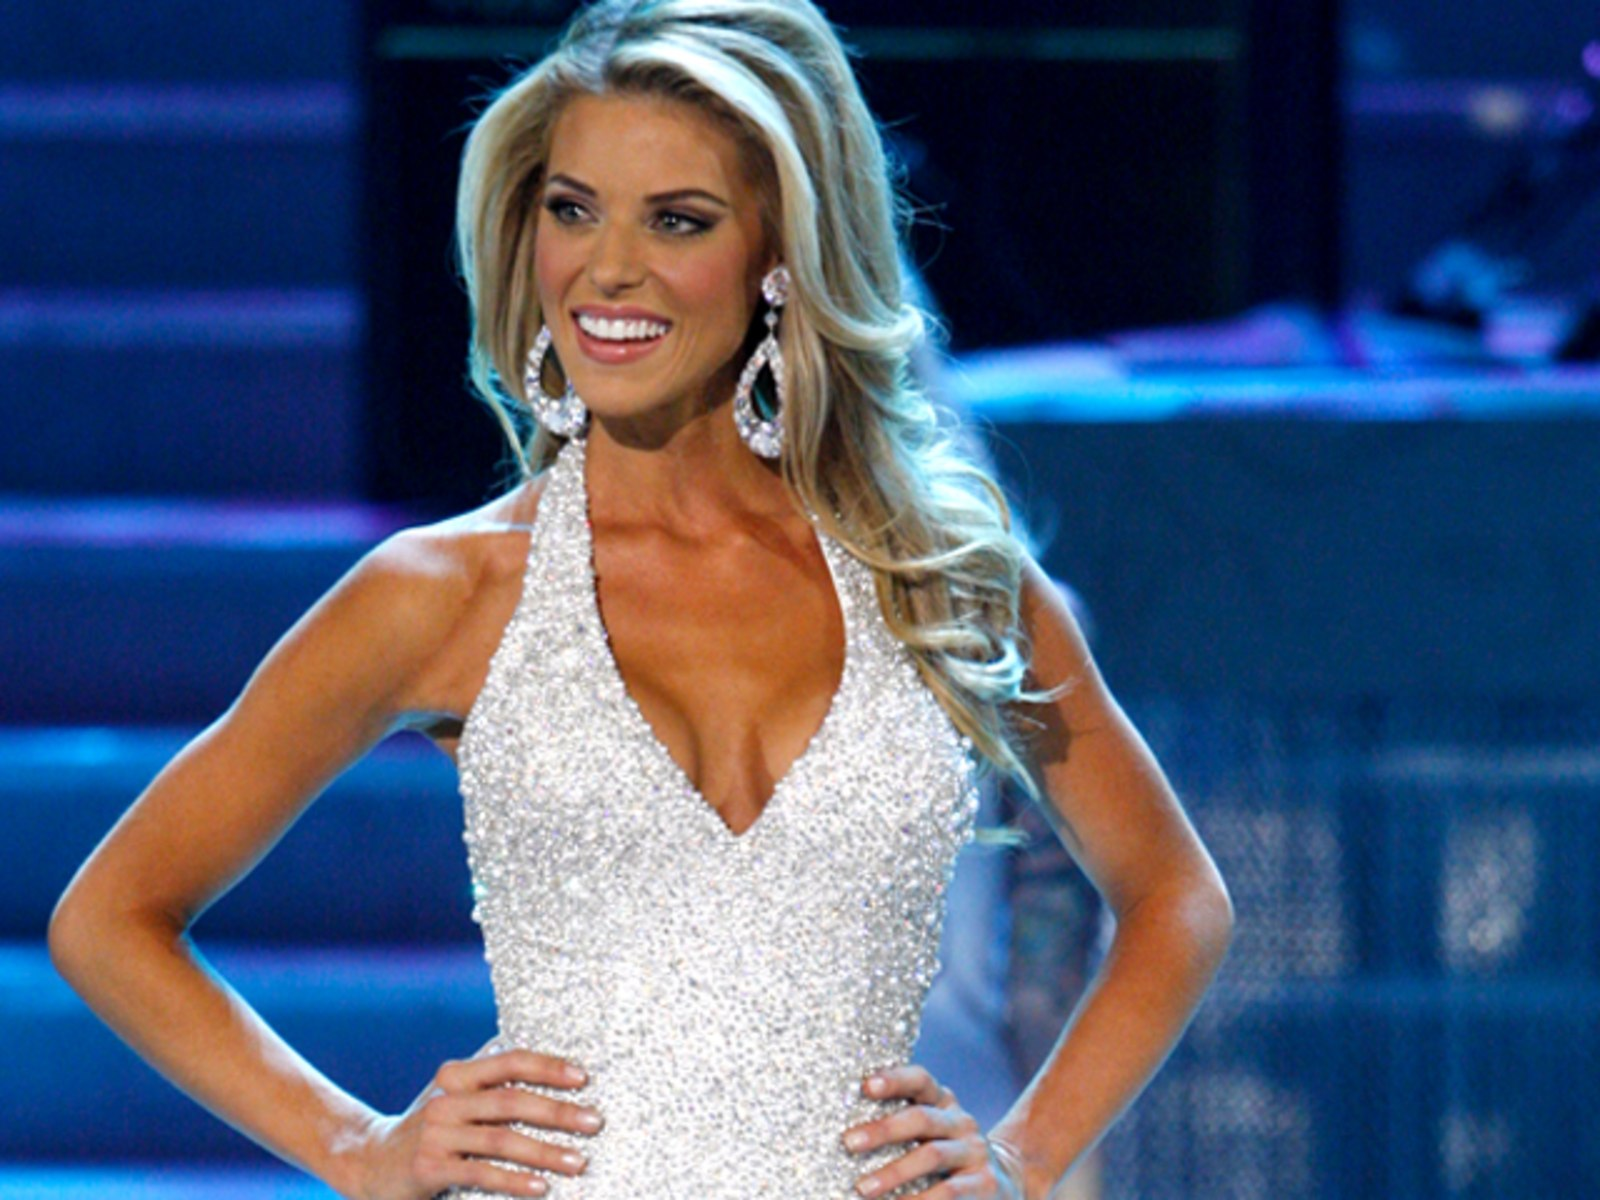 Image: Miss California Carrie Prejean